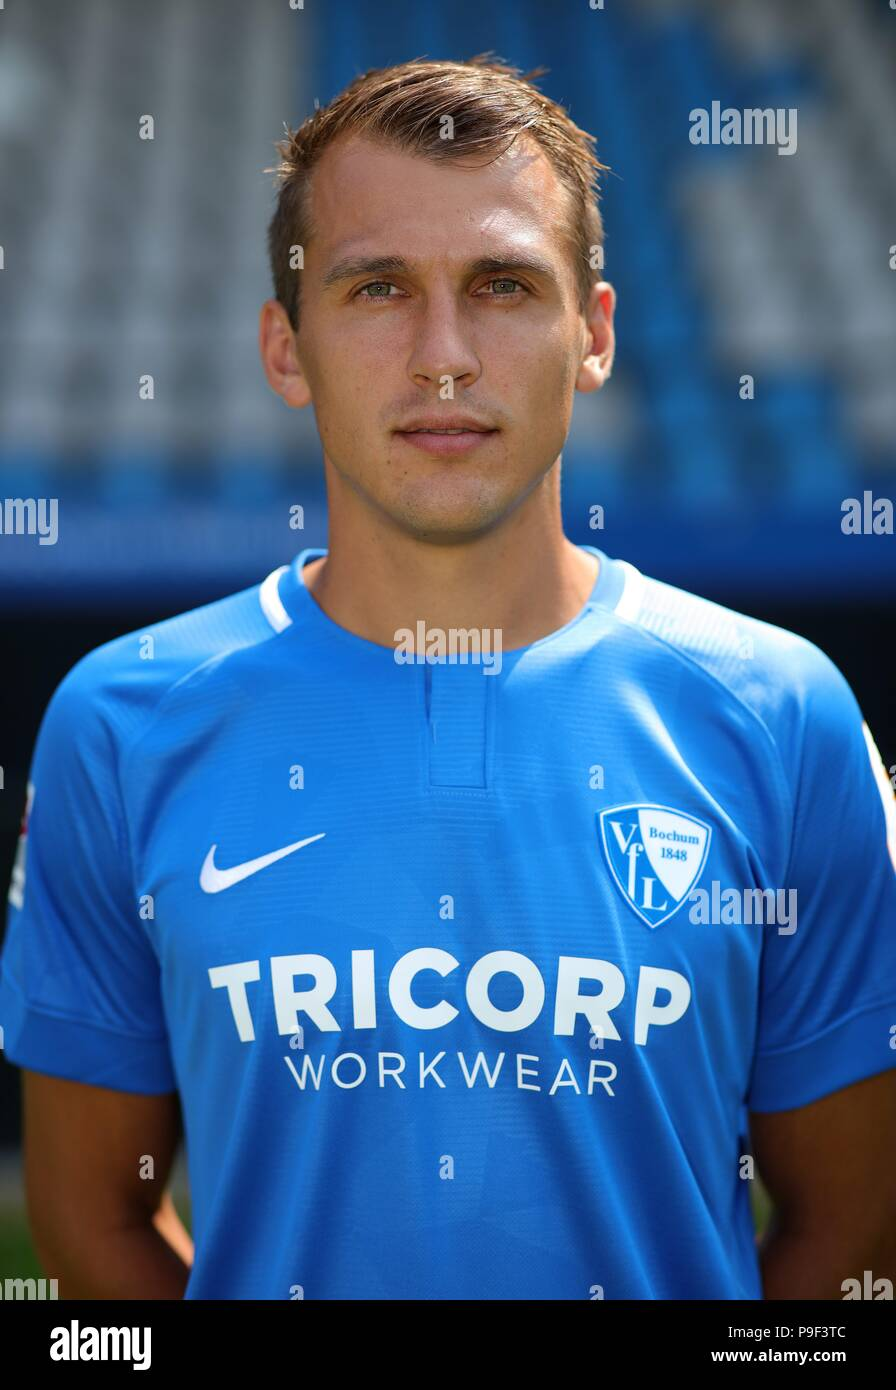 firo: 17.07.2018, football, 2.Bundesliga, season 2018/2019, VfL Bochum, photo shoot, portraits, portrait, Robert TESCHE, | usage worldwide - Stock Image